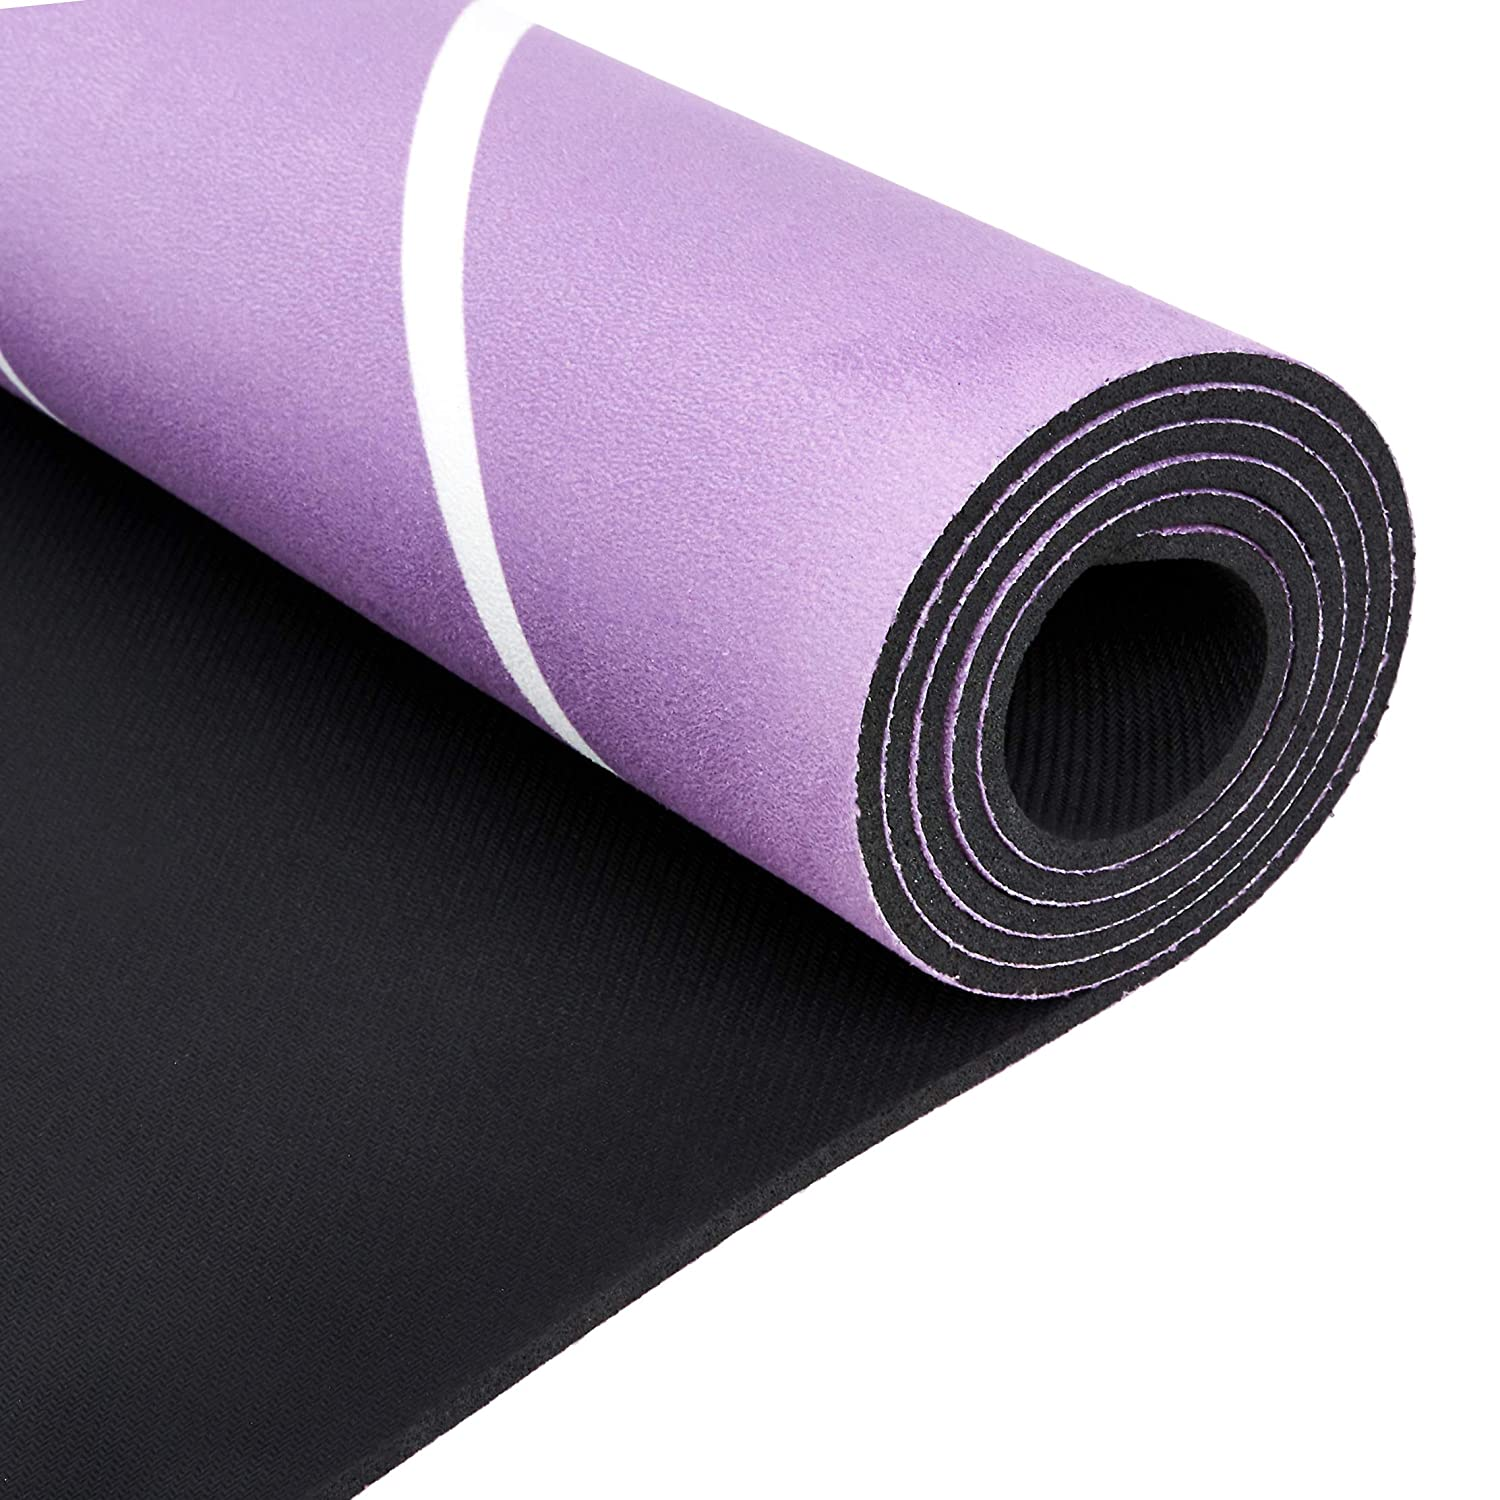 AmazonBasics Rubber & Suede Yoga Mat, Purple 0.16""